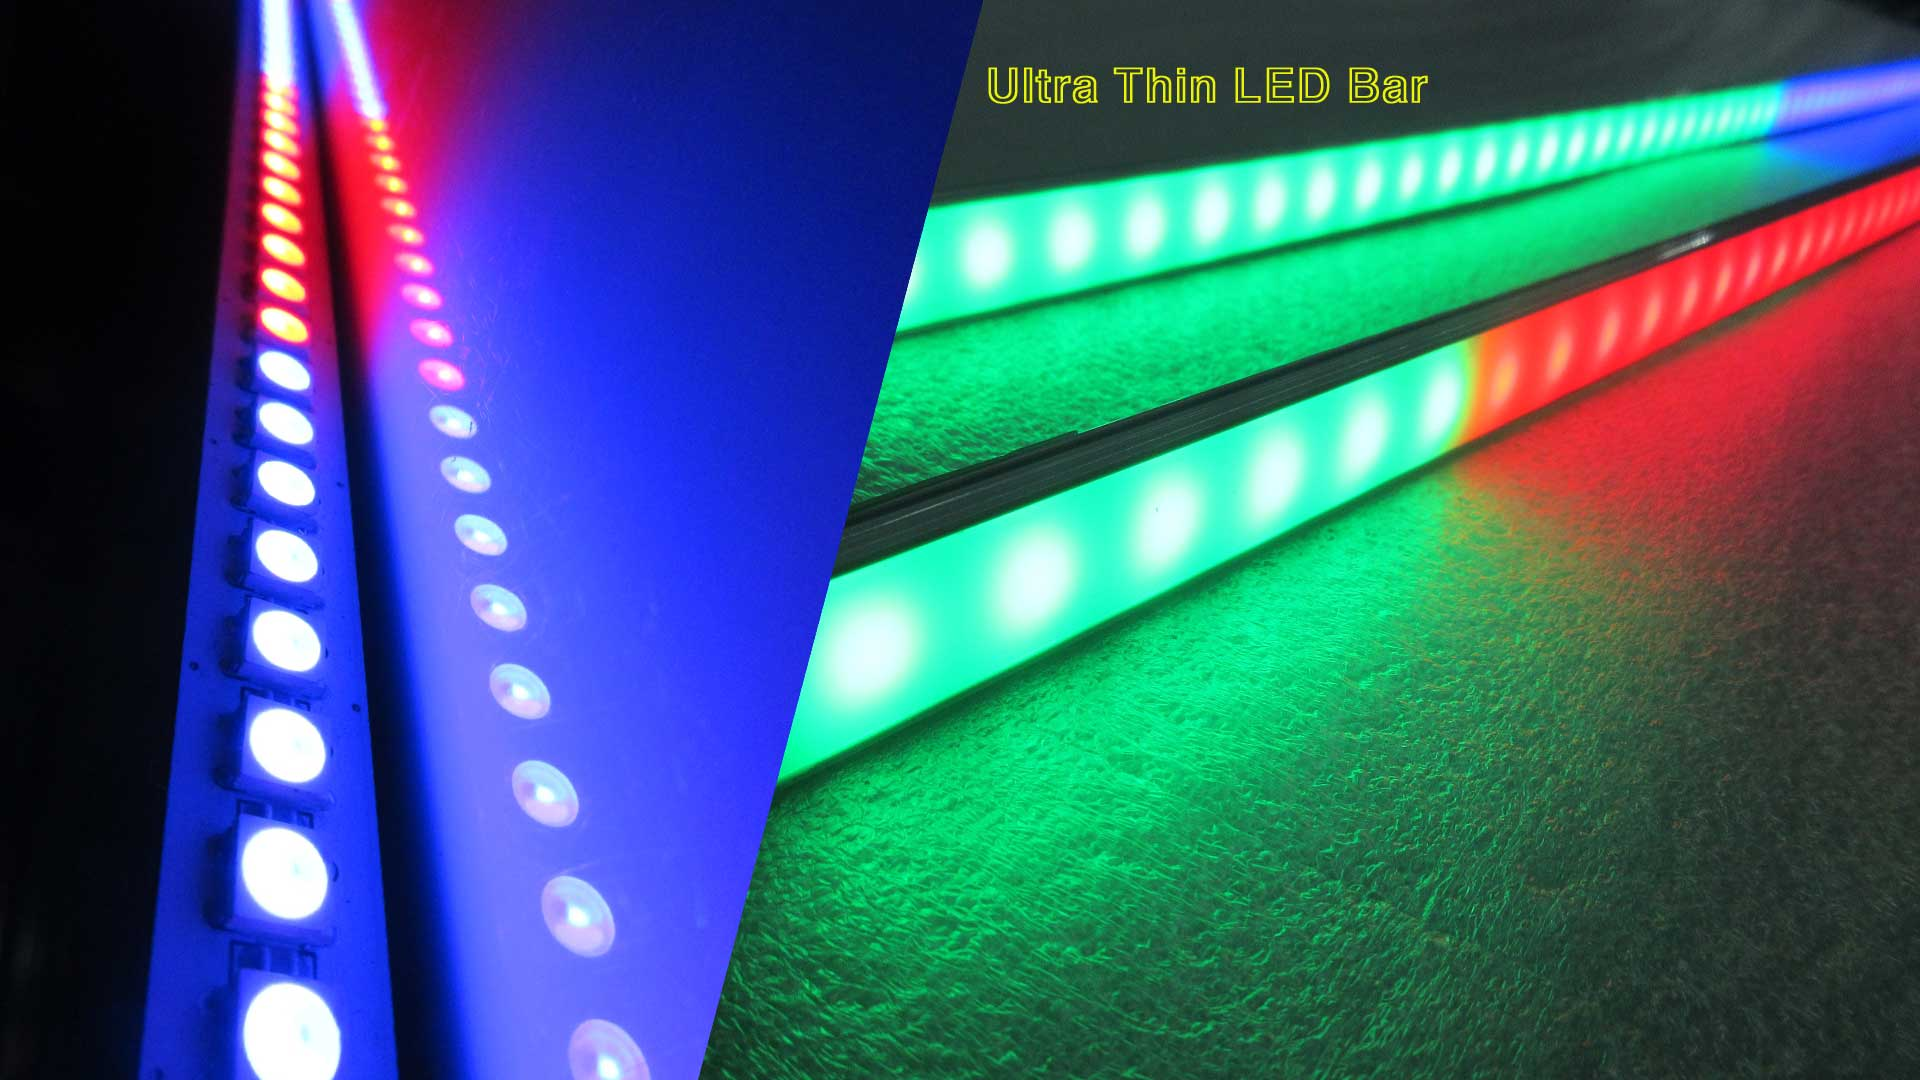 Utra Thin Full Color Digital LED Bar